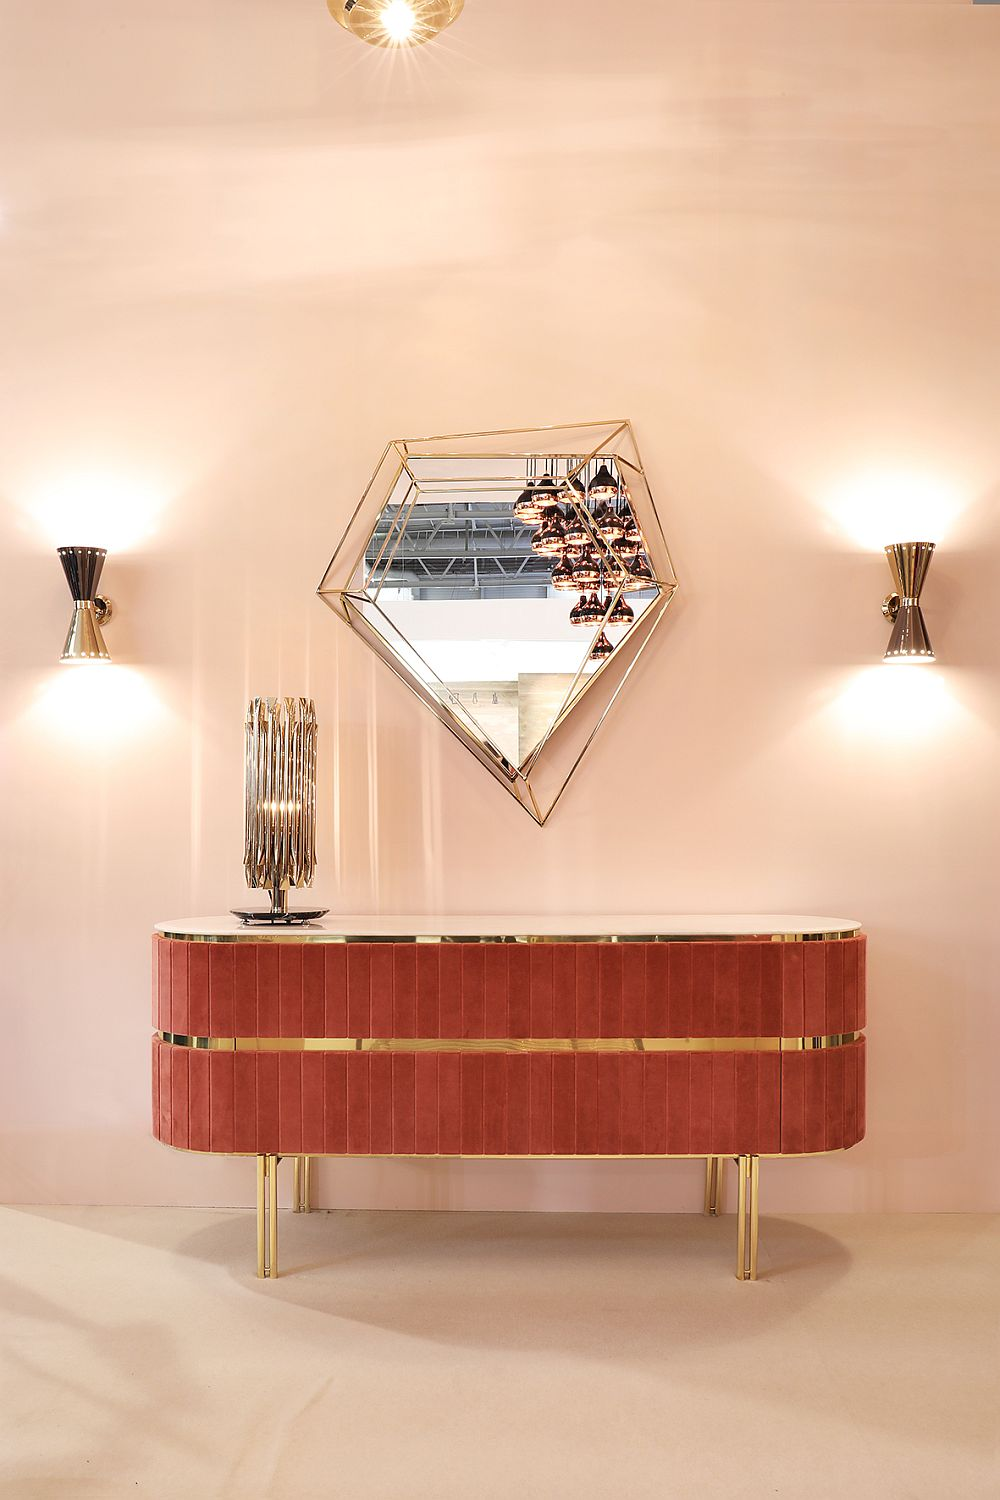 Retro style of the sideboard coupled with geometric brilliance of Diamond mirror